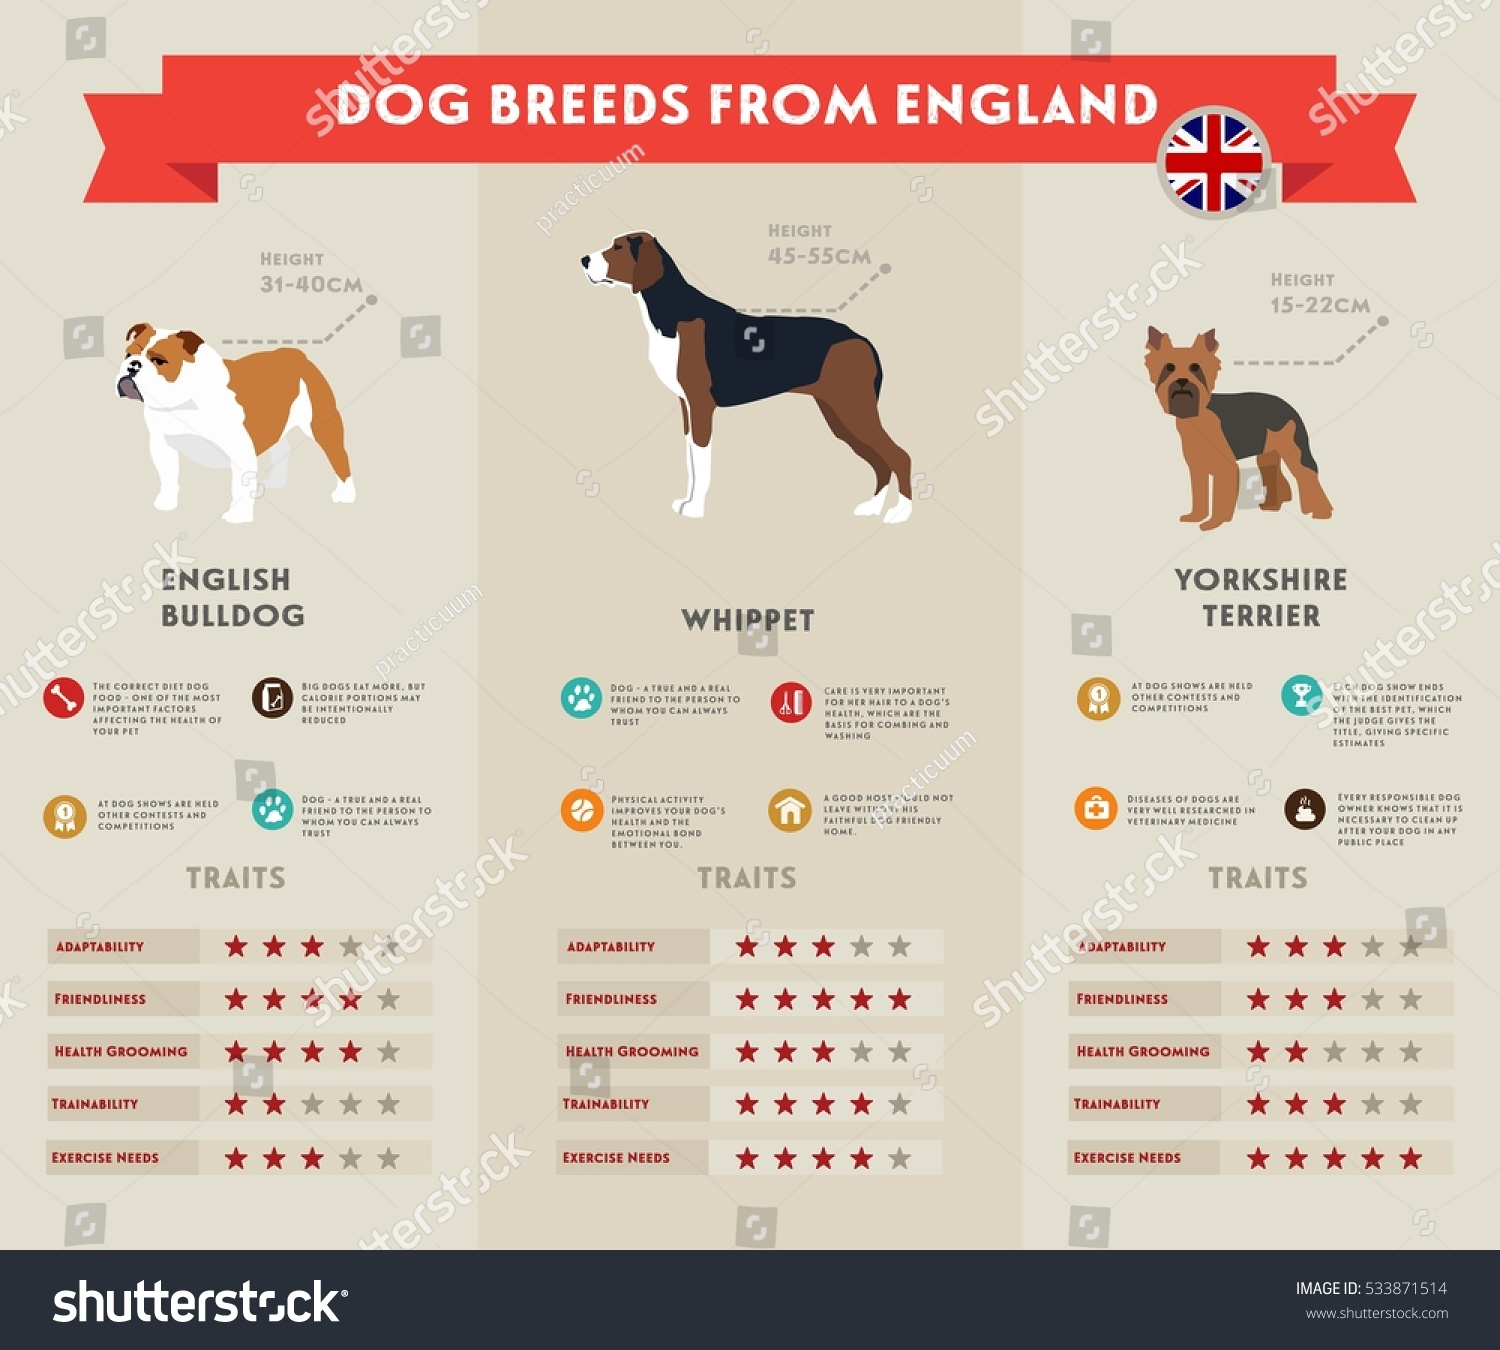 Dog infographic illustration vector icons set stock vector dog infographic illustration vector icons set english bulldog whippet yorkshire terrier nvjuhfo Image collections